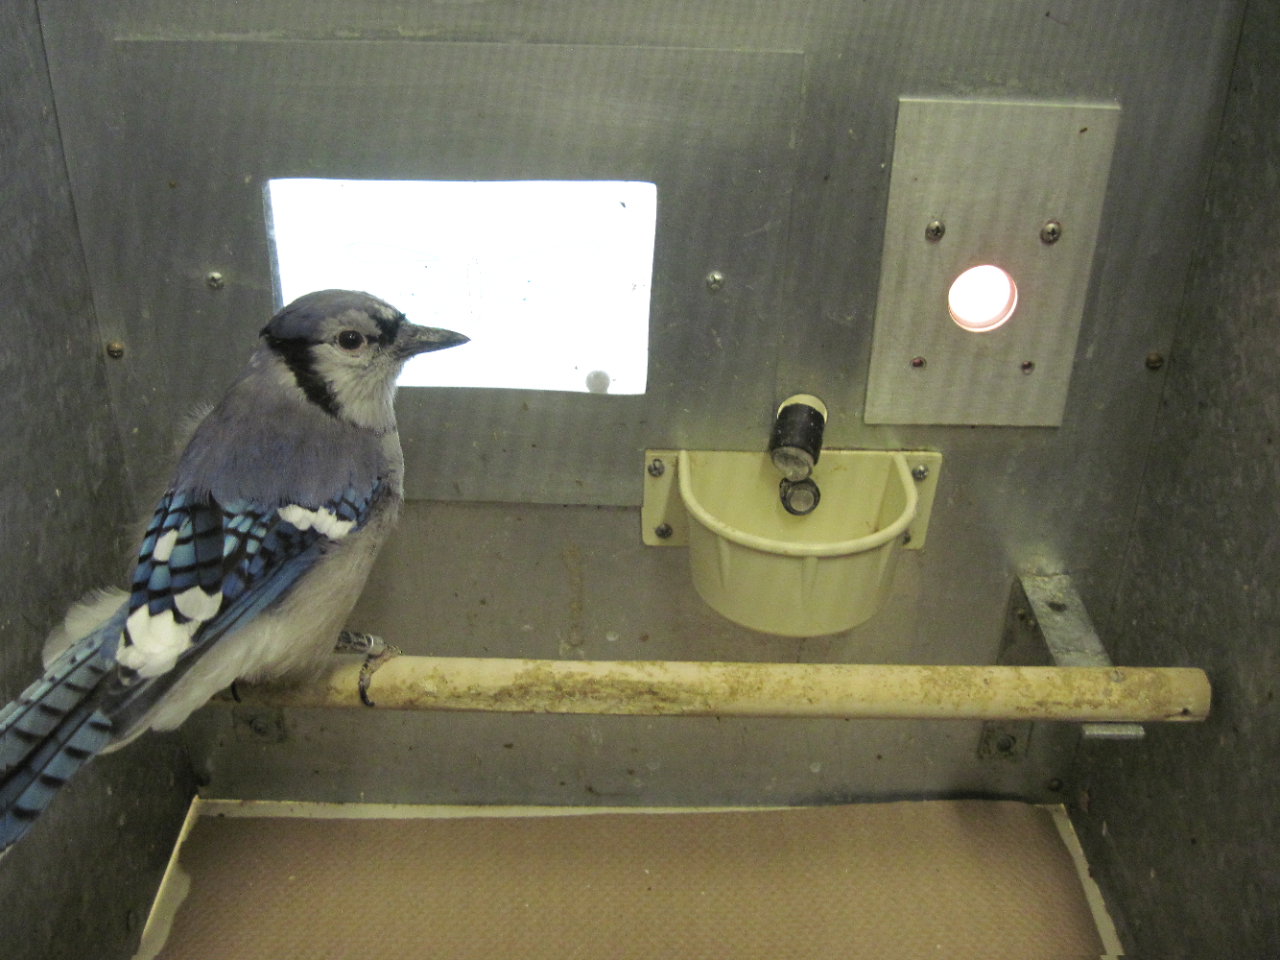 A blue jay sits on a perch in an experimental box with lights and a food tray.